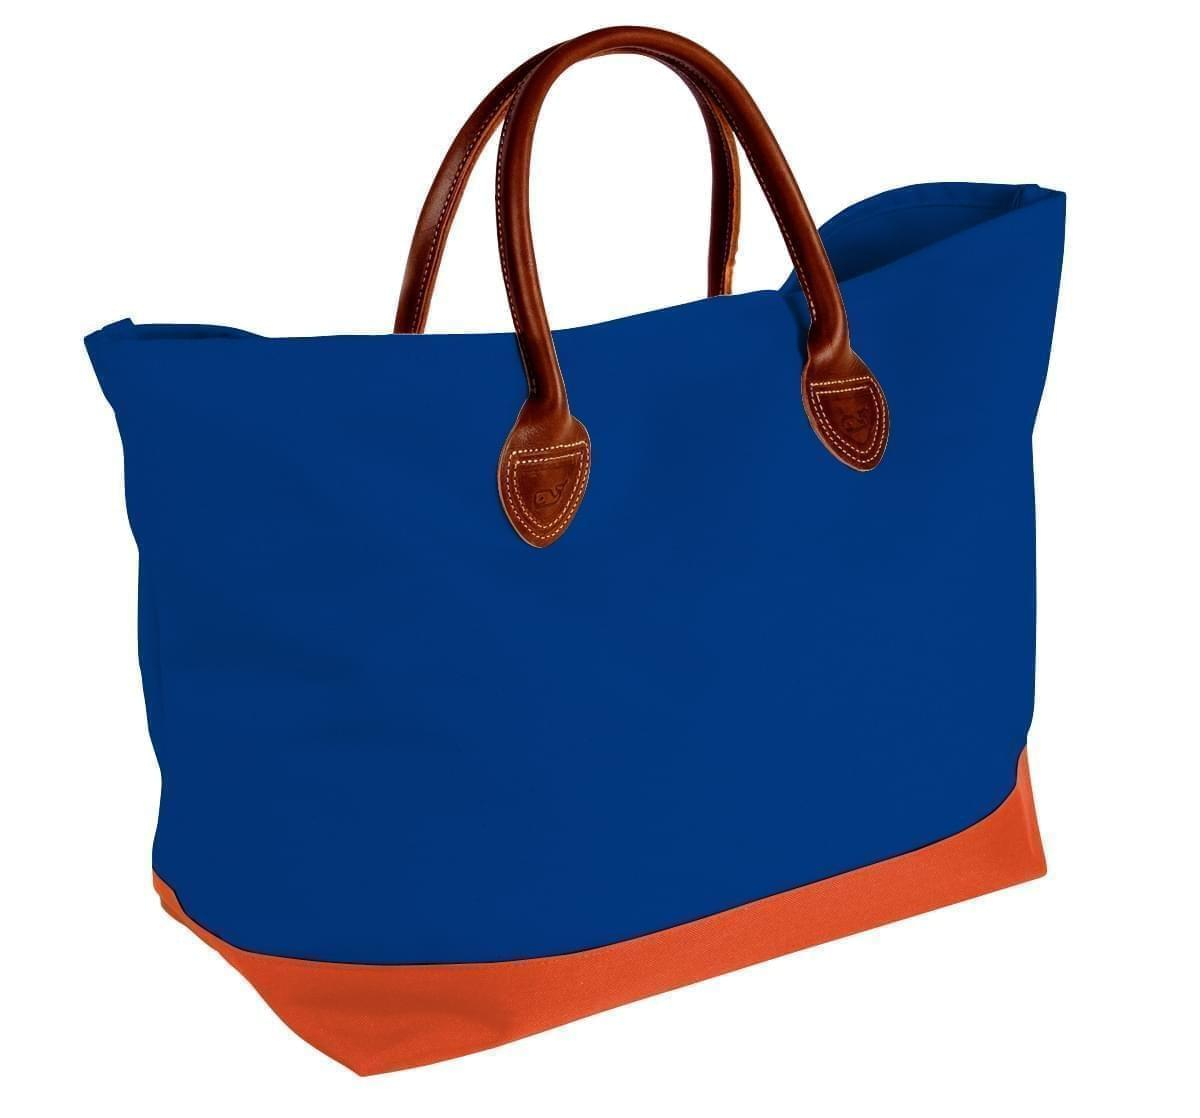 USA Made Canvas Leather Handle Totes, Royal Blue-Orange, 10899-JF9